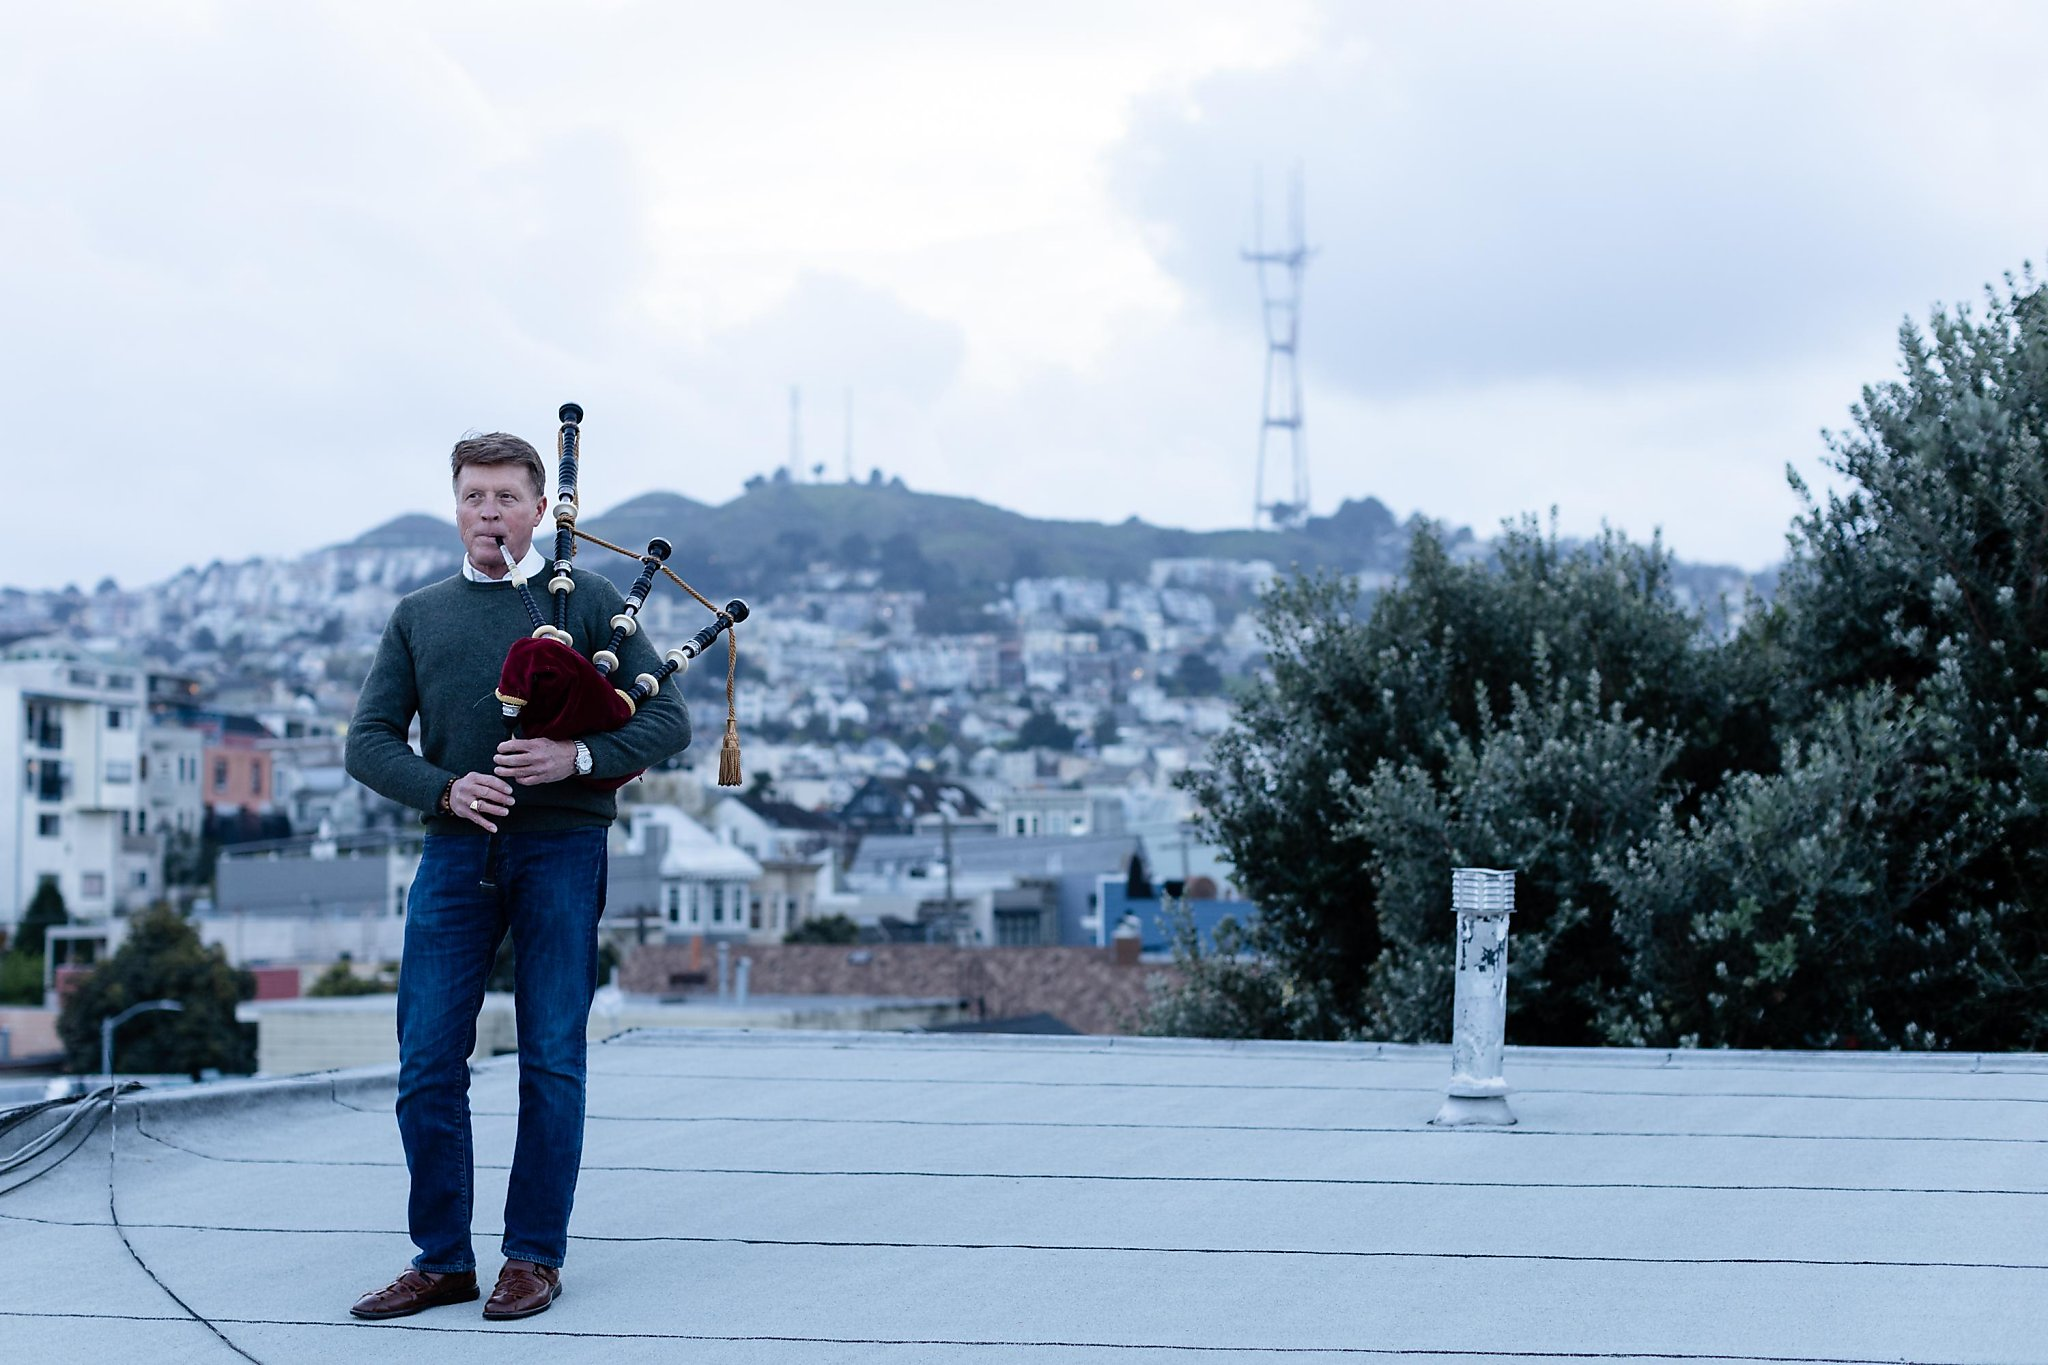 SF bagpiper says farewell to nightly pandemic serenades in the Castro amid adoring crowds